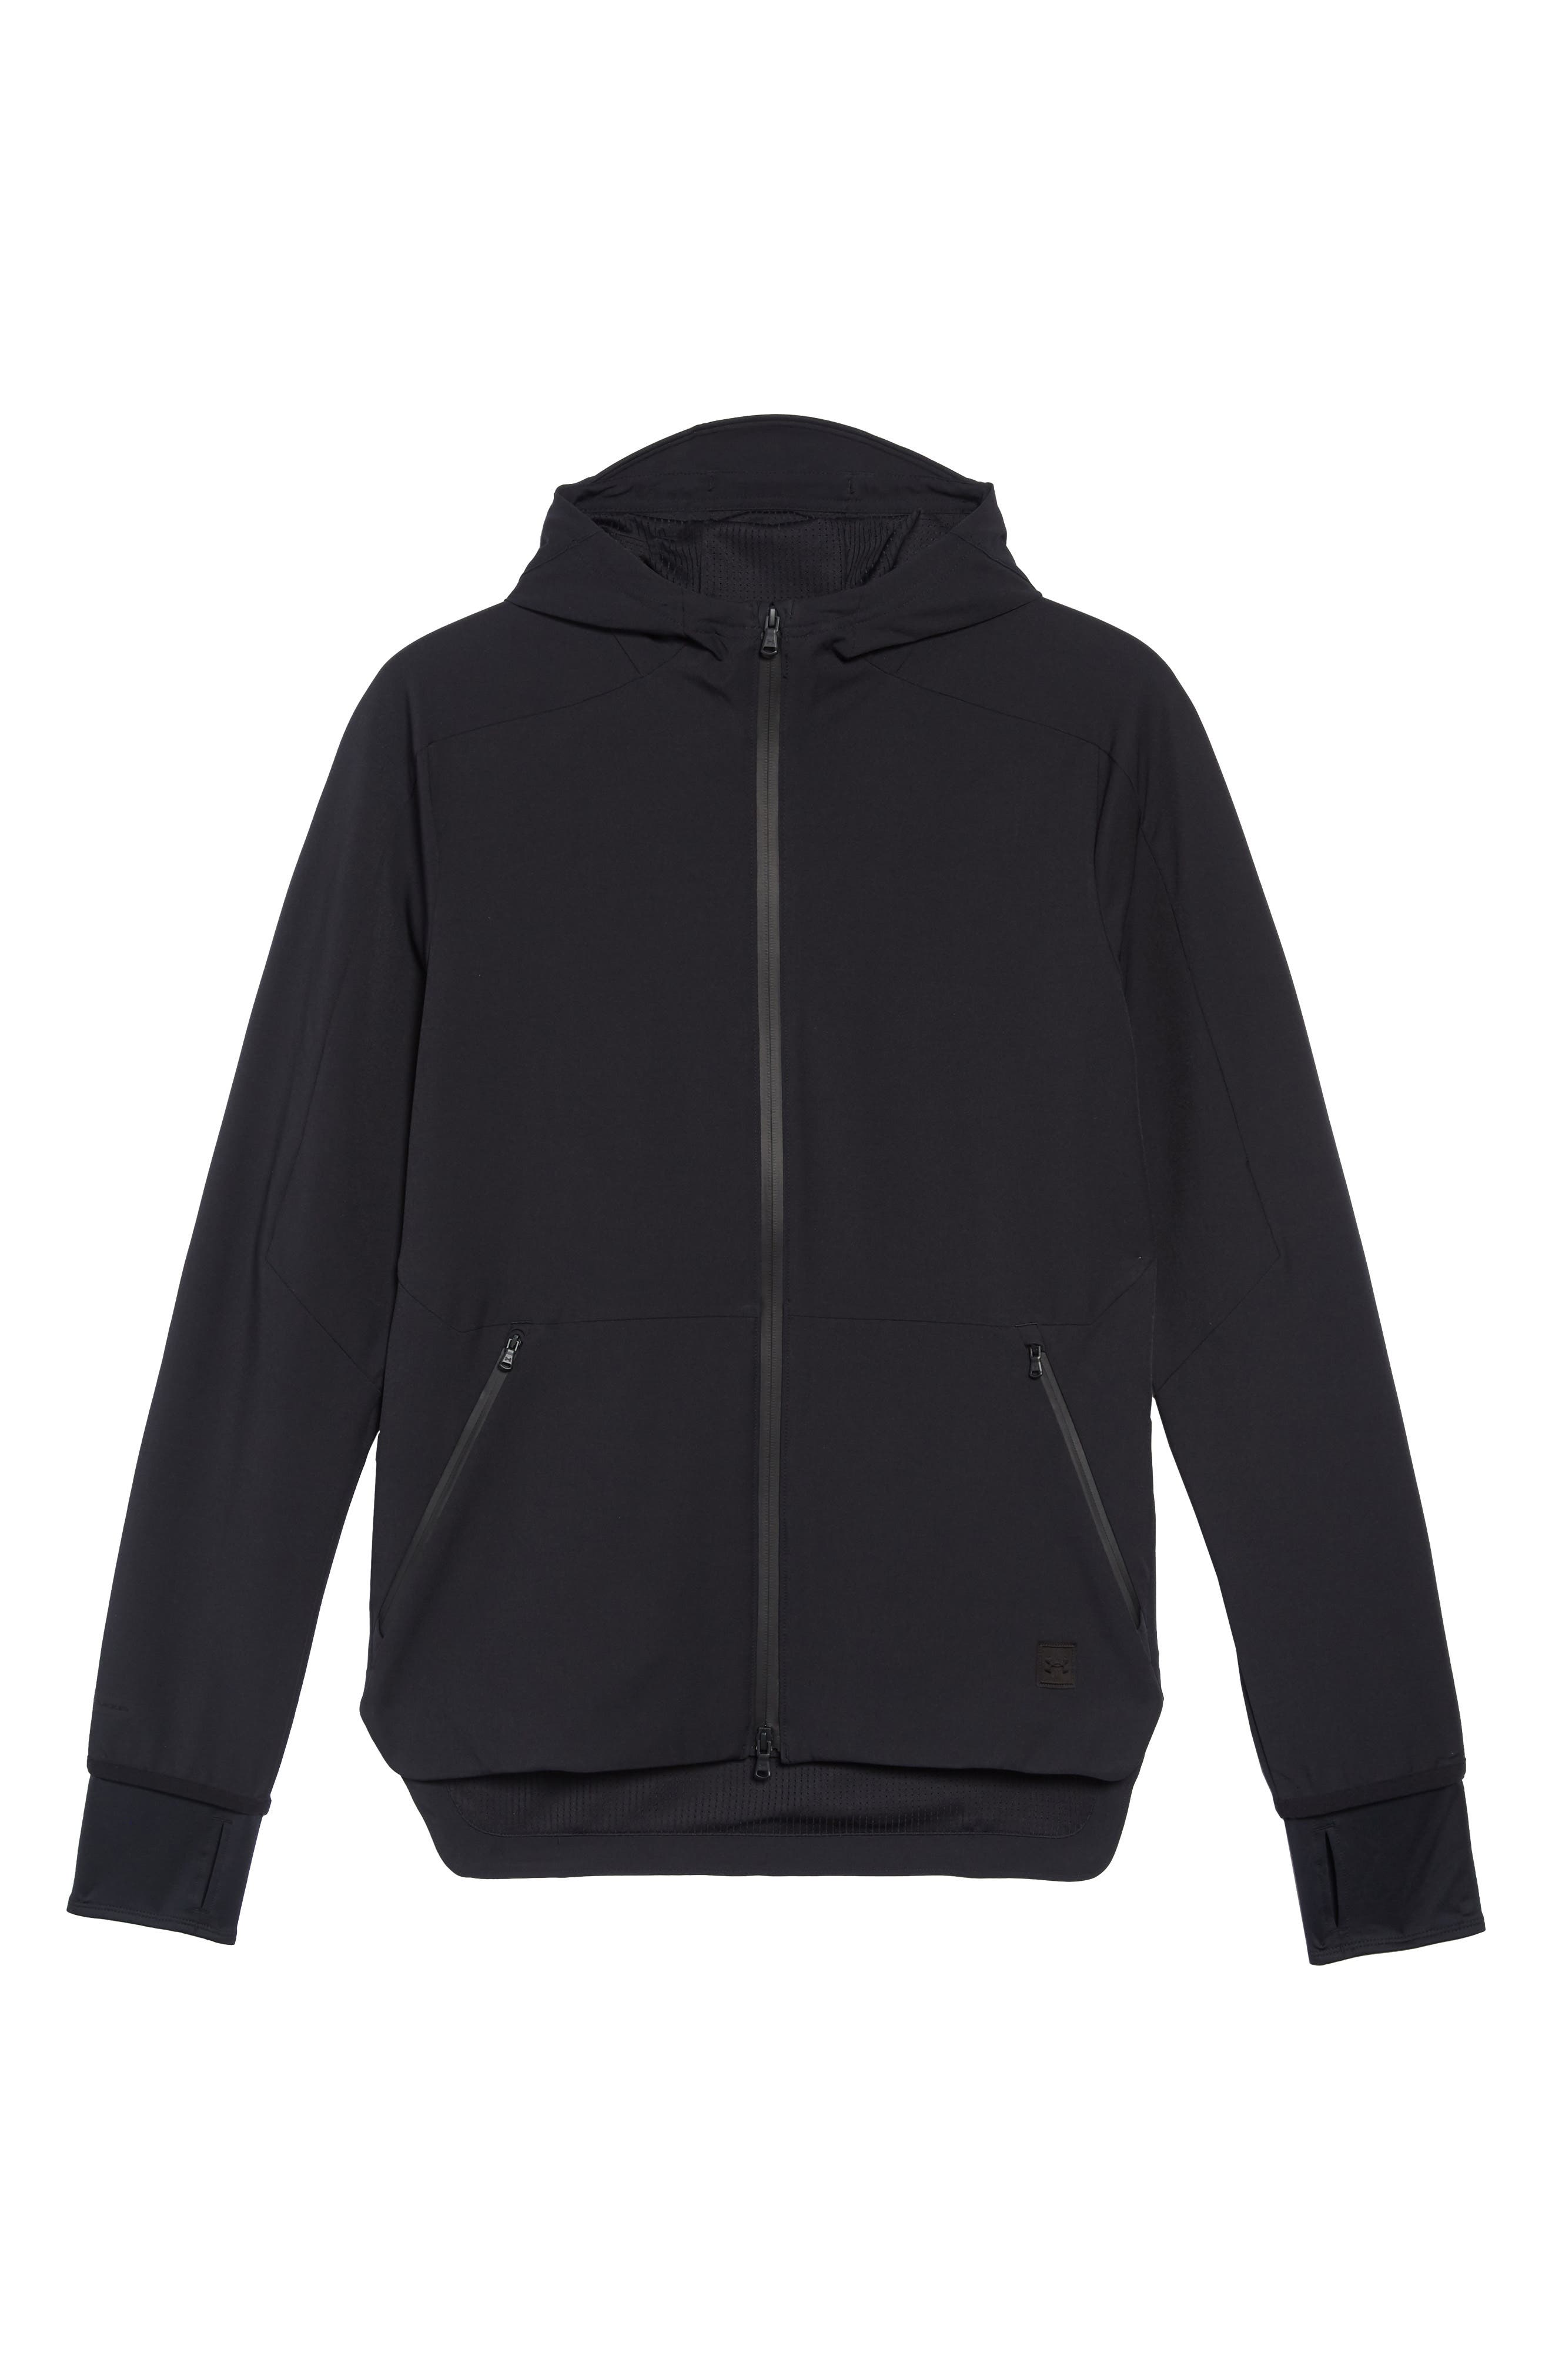 Perpetual Zip Jacket,                             Alternate thumbnail 5, color,                             001